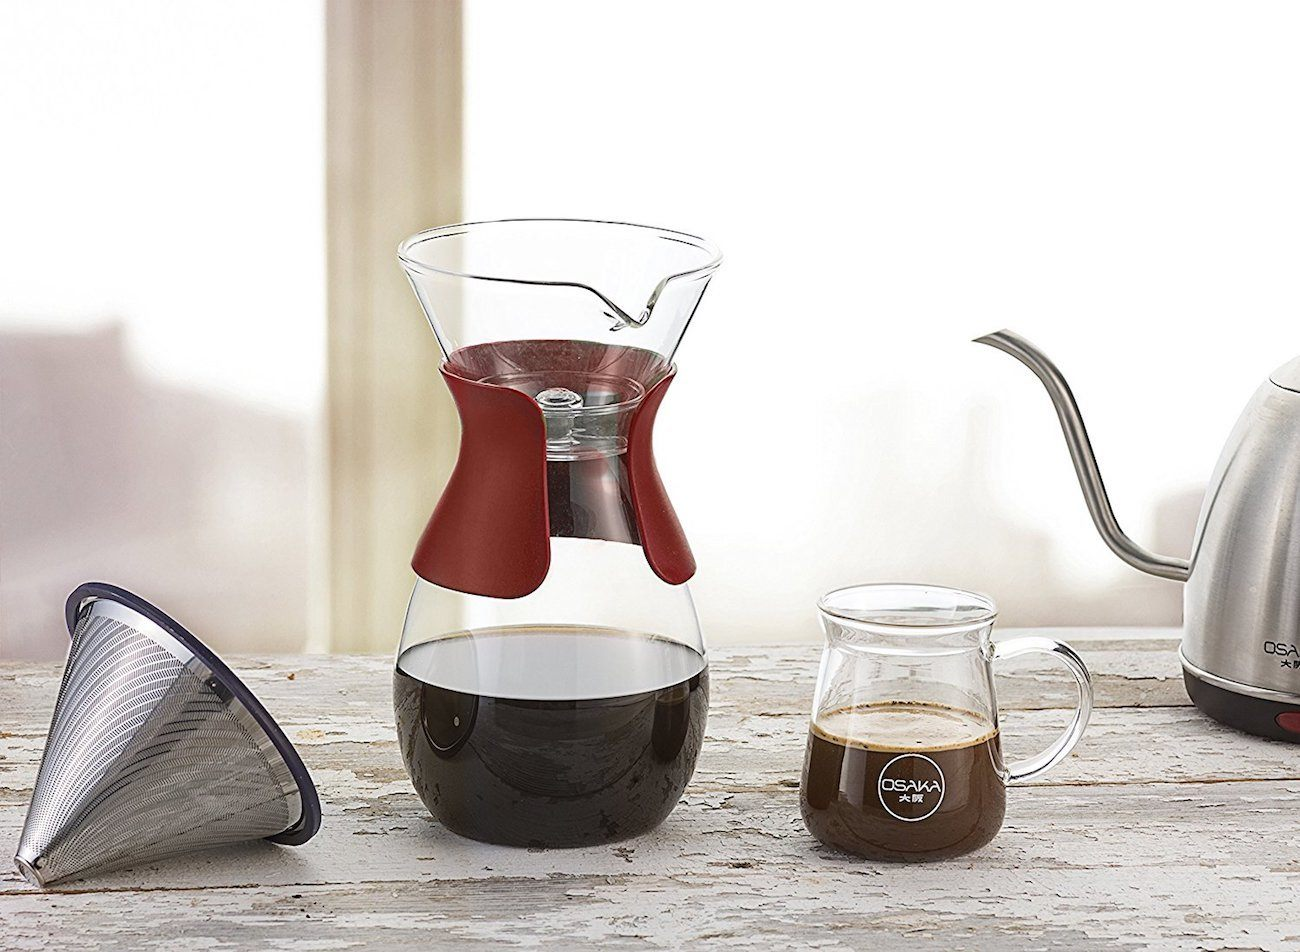 Osaka Pour-Over Drip Brewer